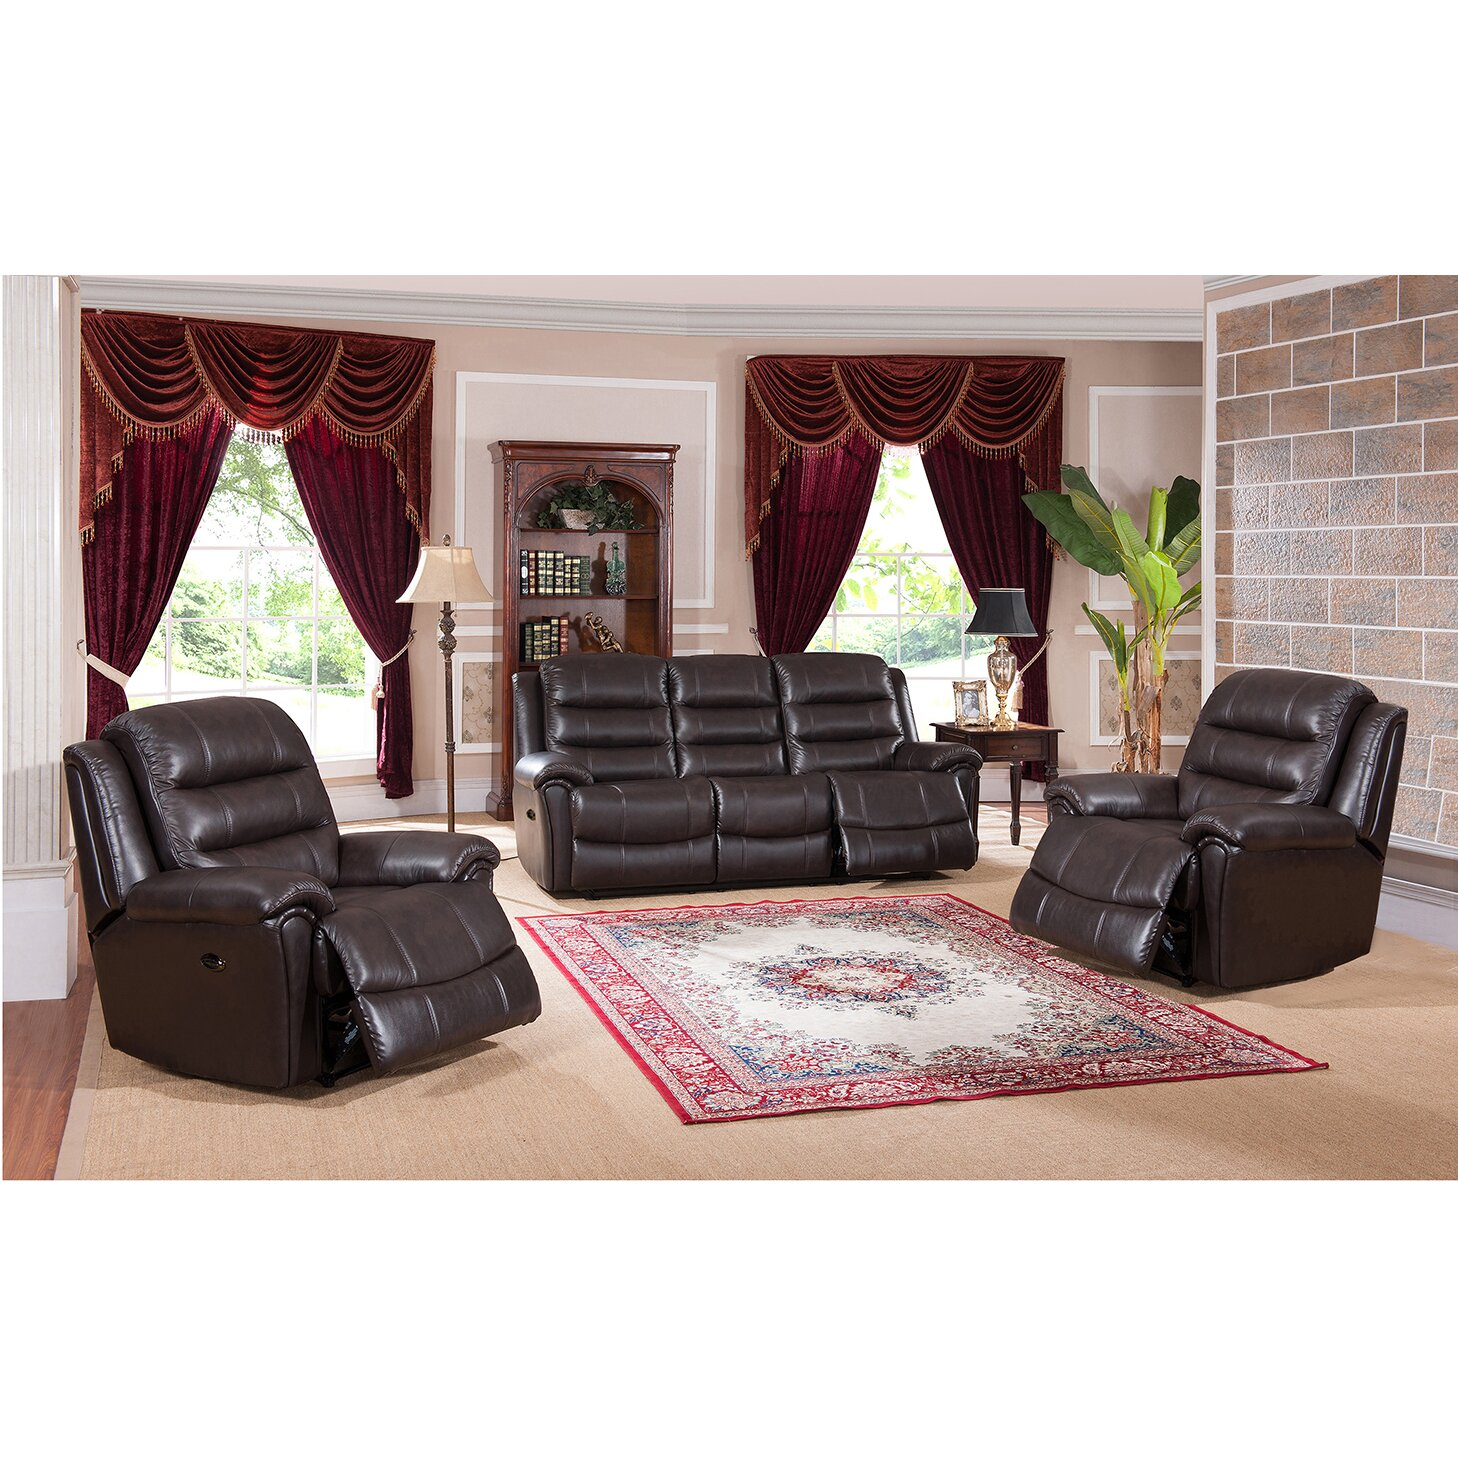 Amax astoria 3 piece leather living room set wayfair for Living room 3 piece sets